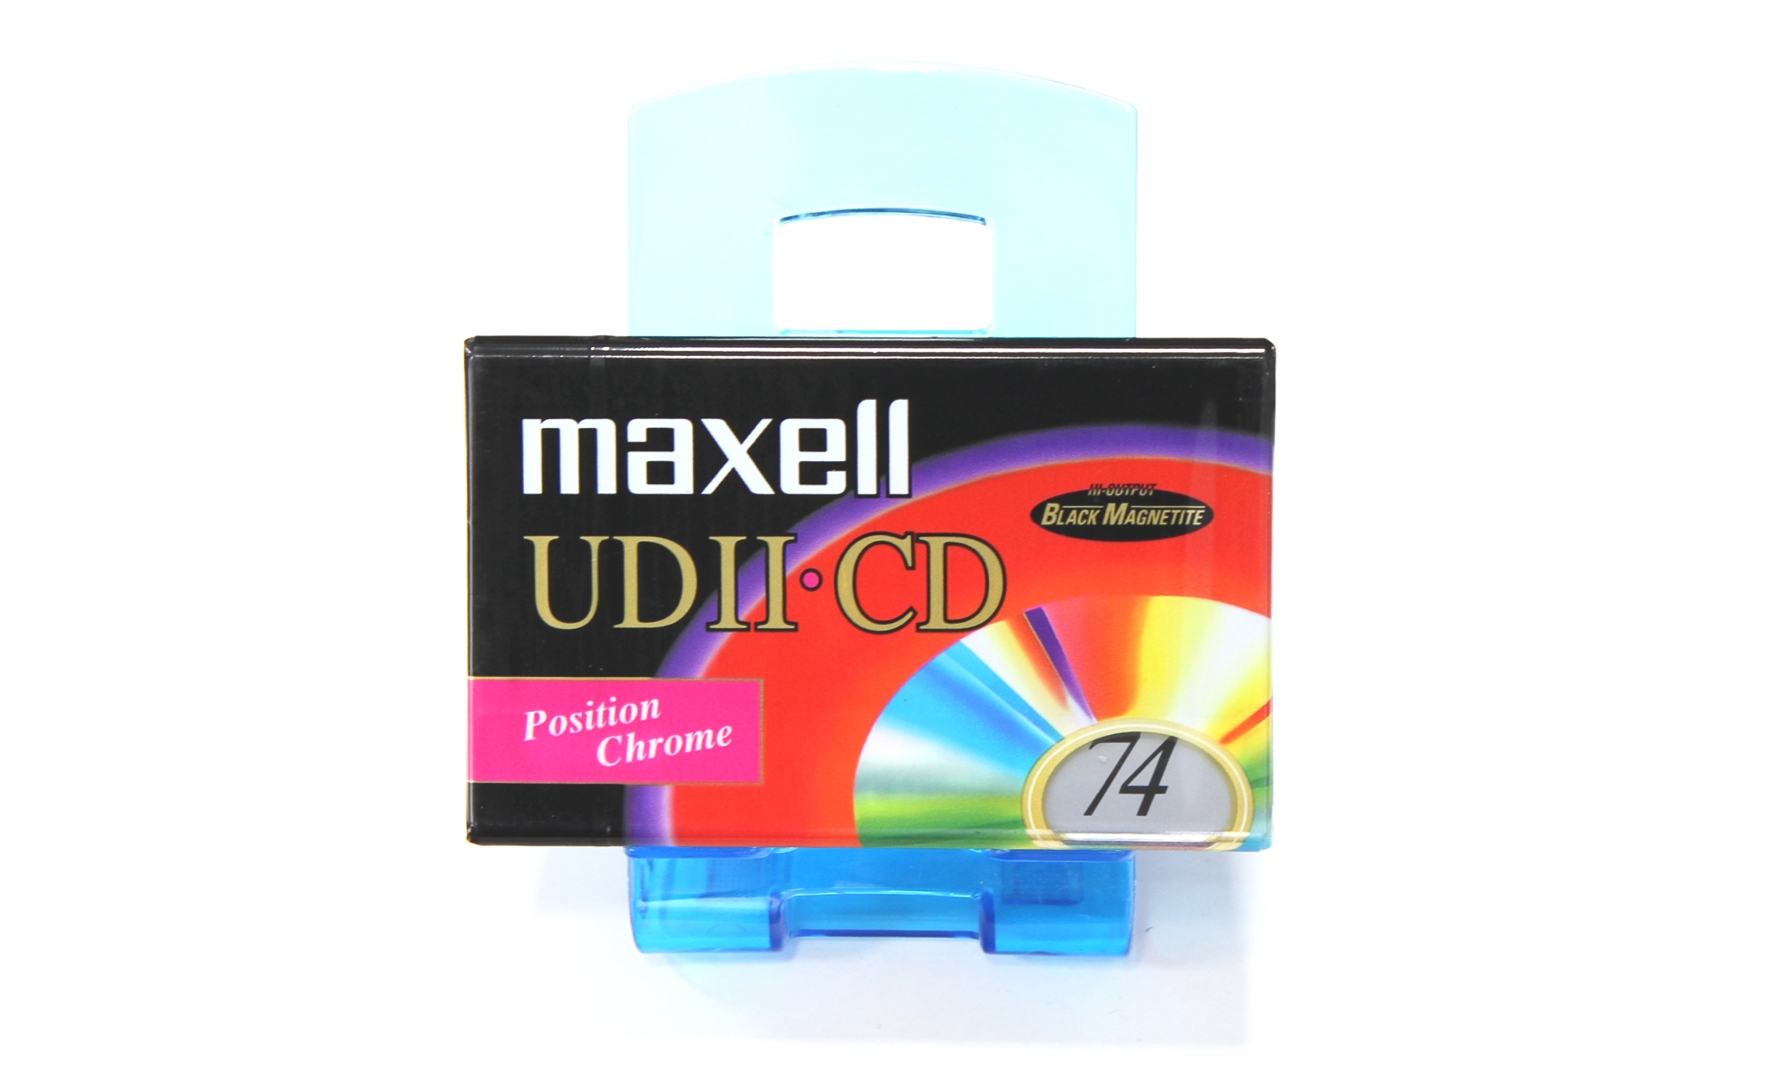 MAXELL UDII.CD-74 Position Chrome